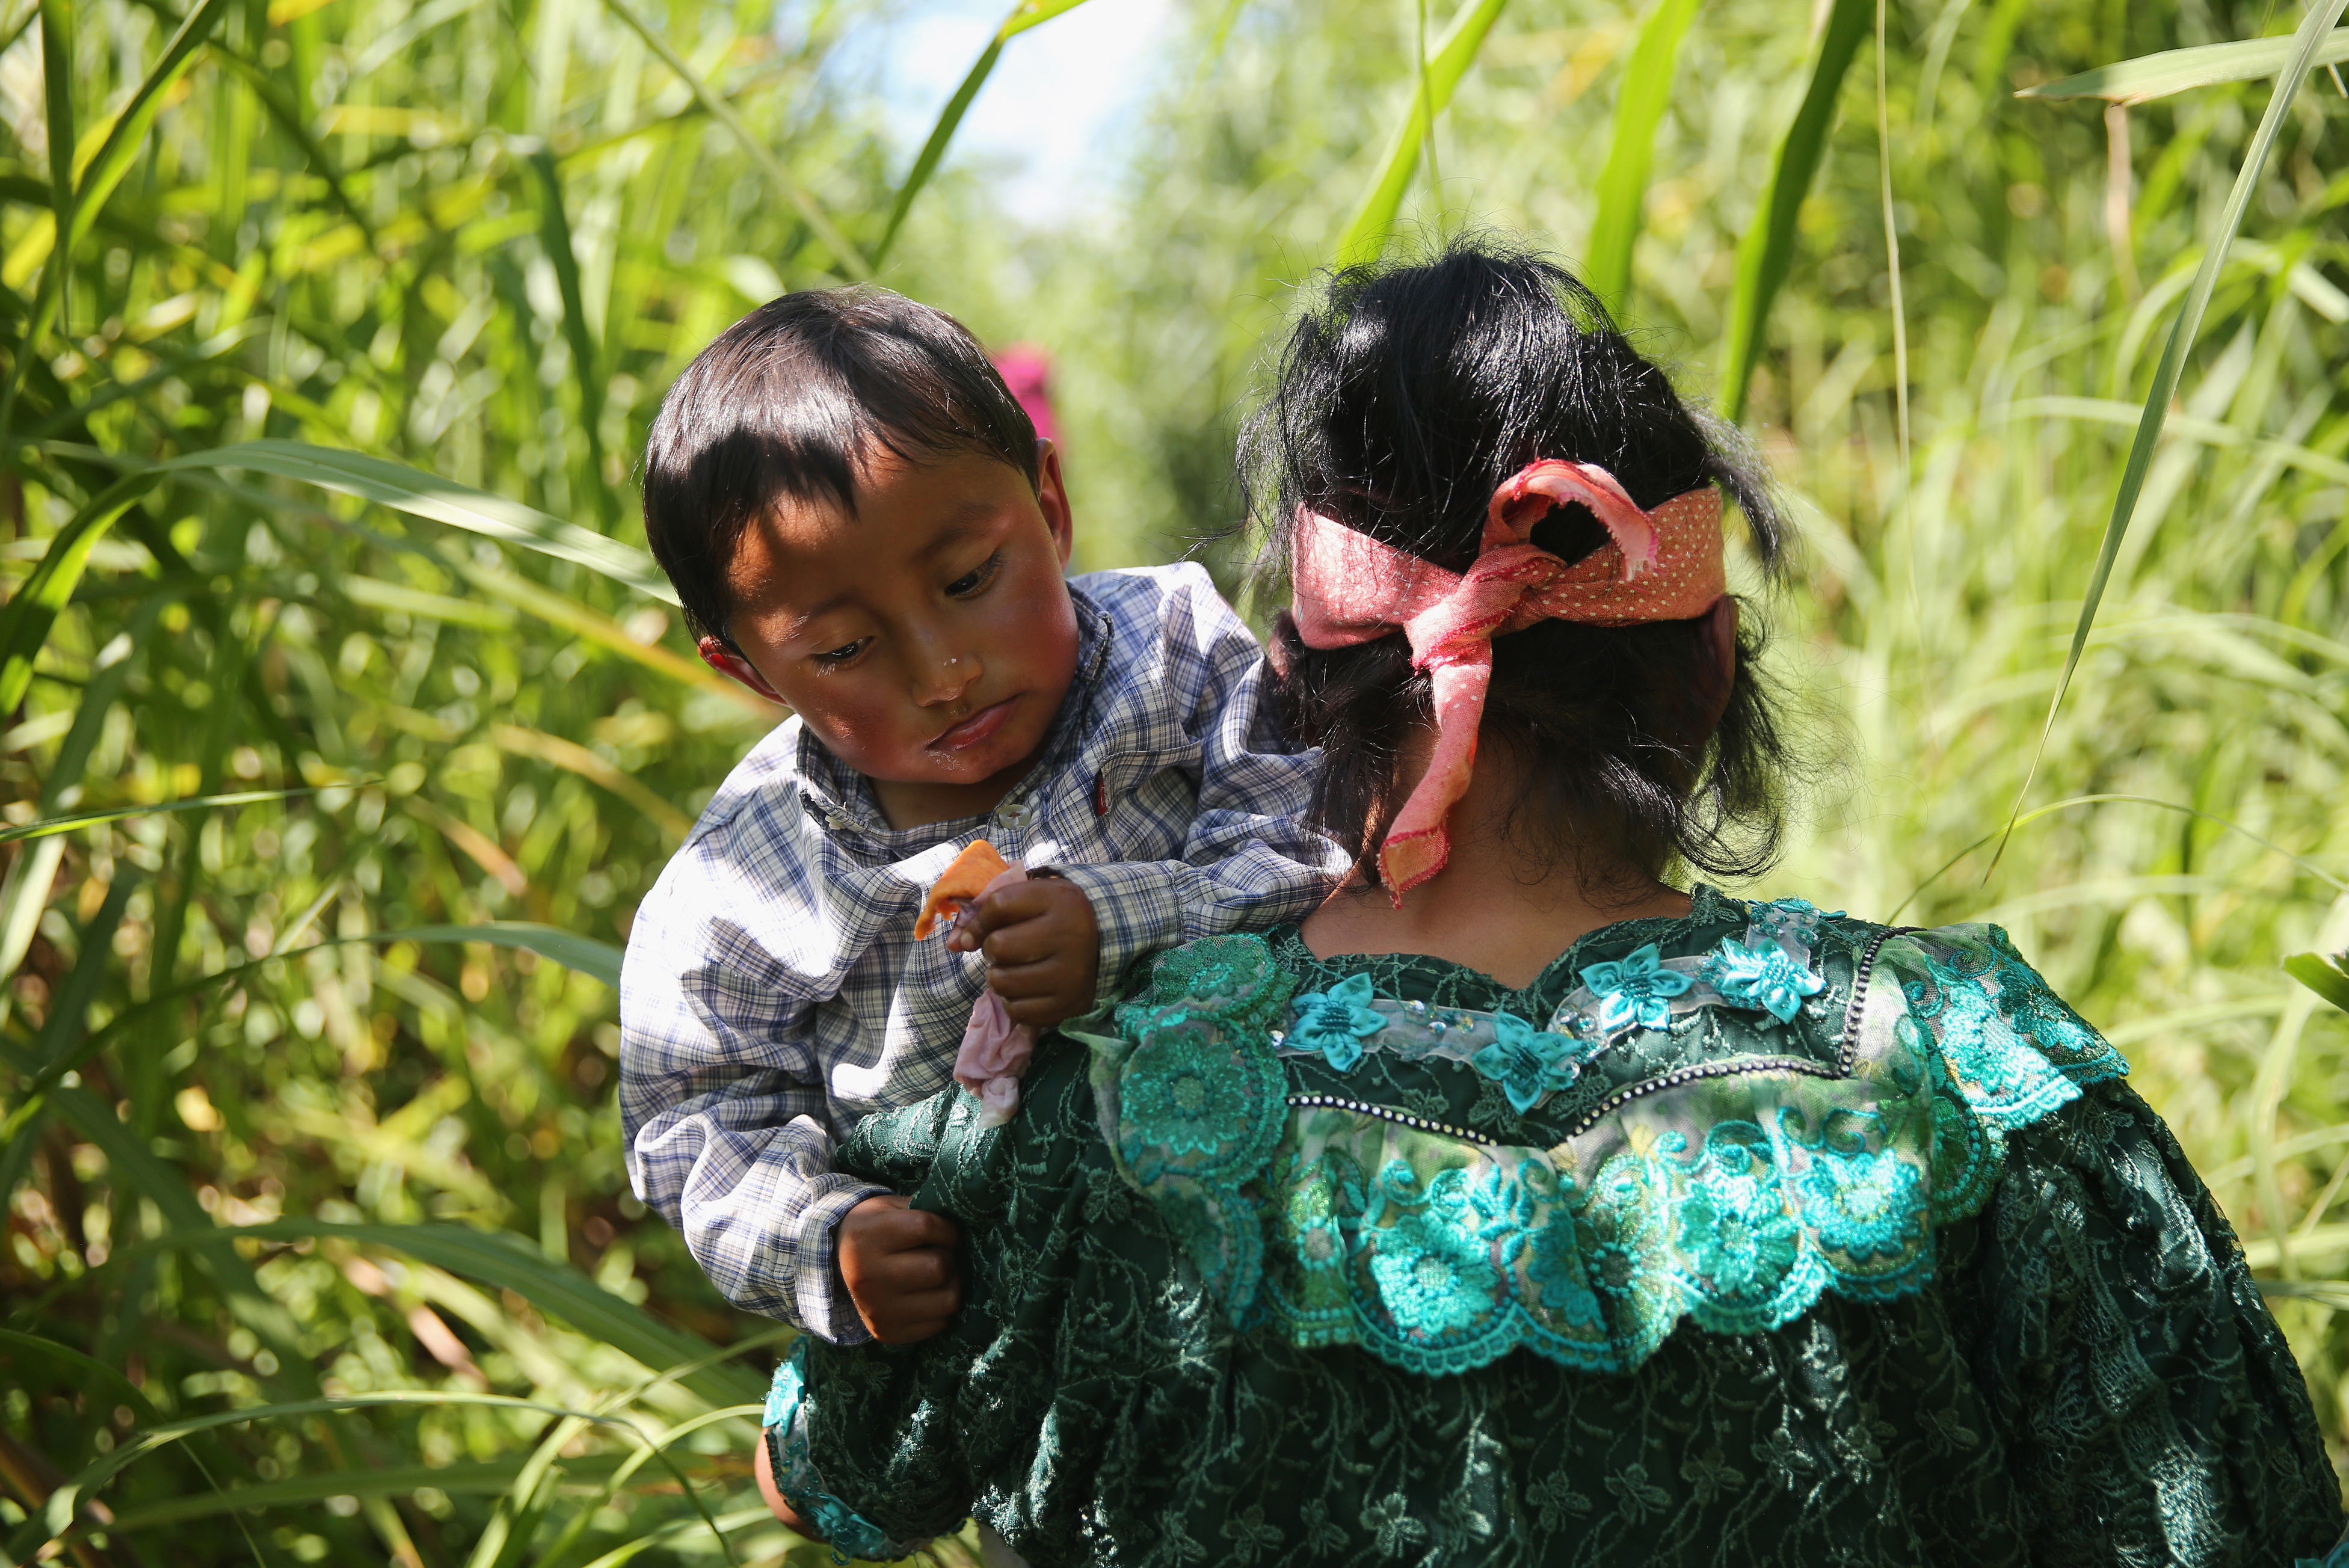 An Indigenous family walks from Guatemala into Mexico after illegally crossing the border at the Suchiate River in Talisman, Mexico on Aug. 1, 2013.